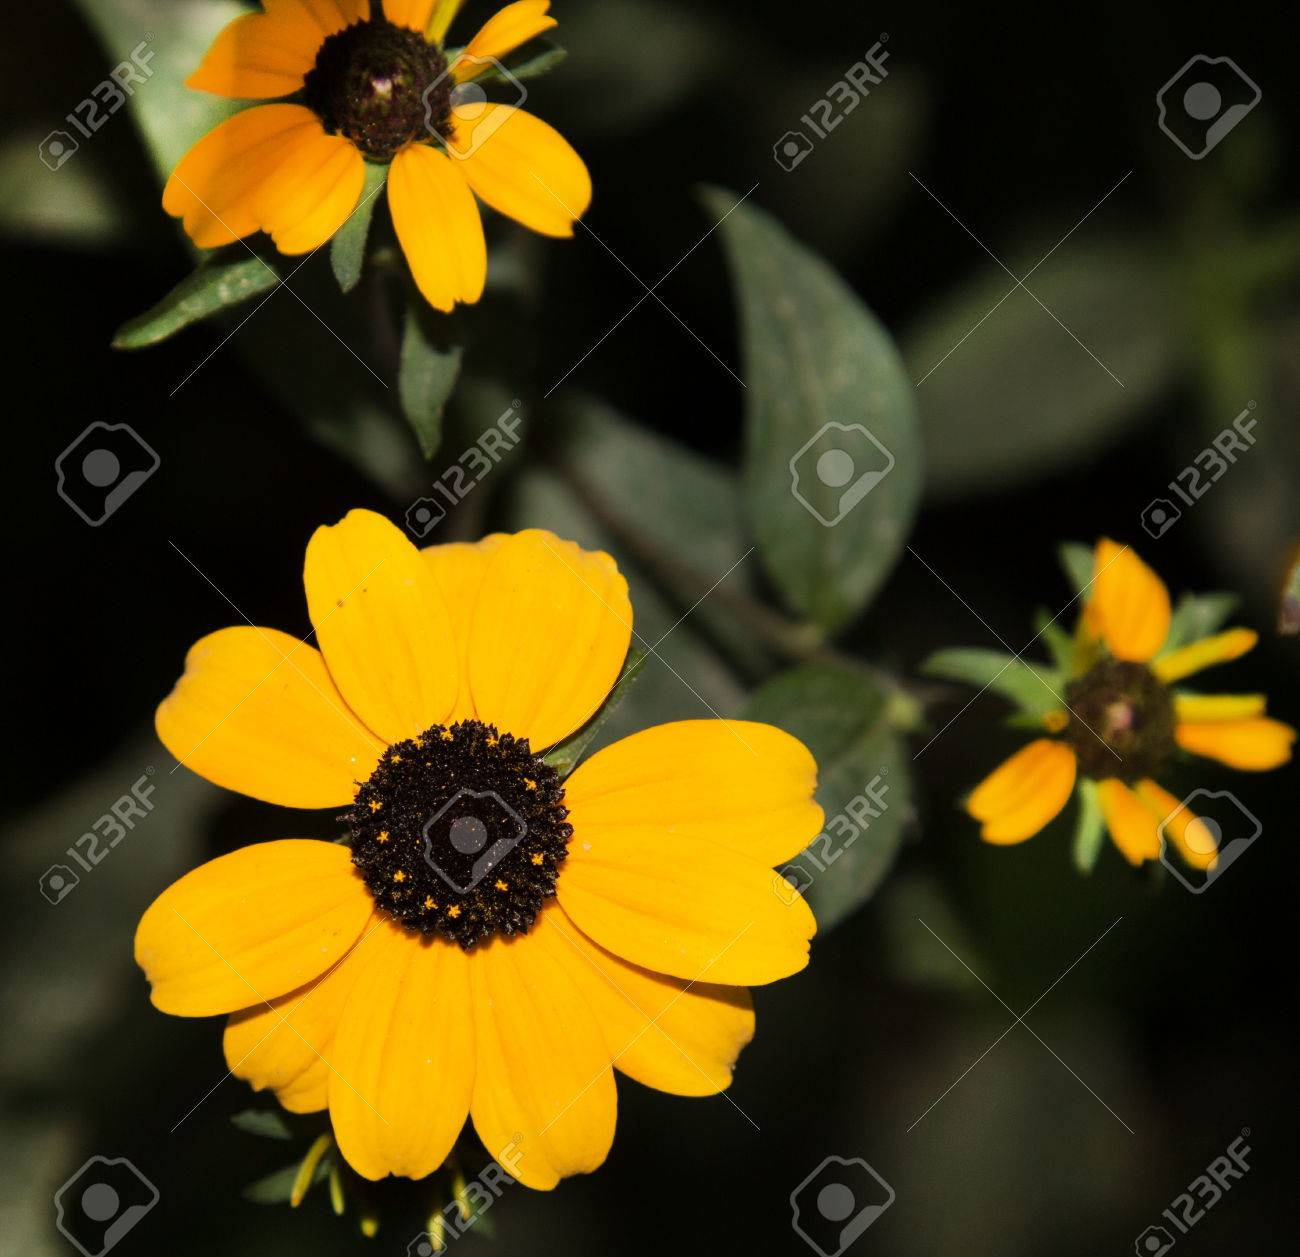 Yellow flowers with black center stock photo picture and royalty stock photo yellow flowers with black center mightylinksfo